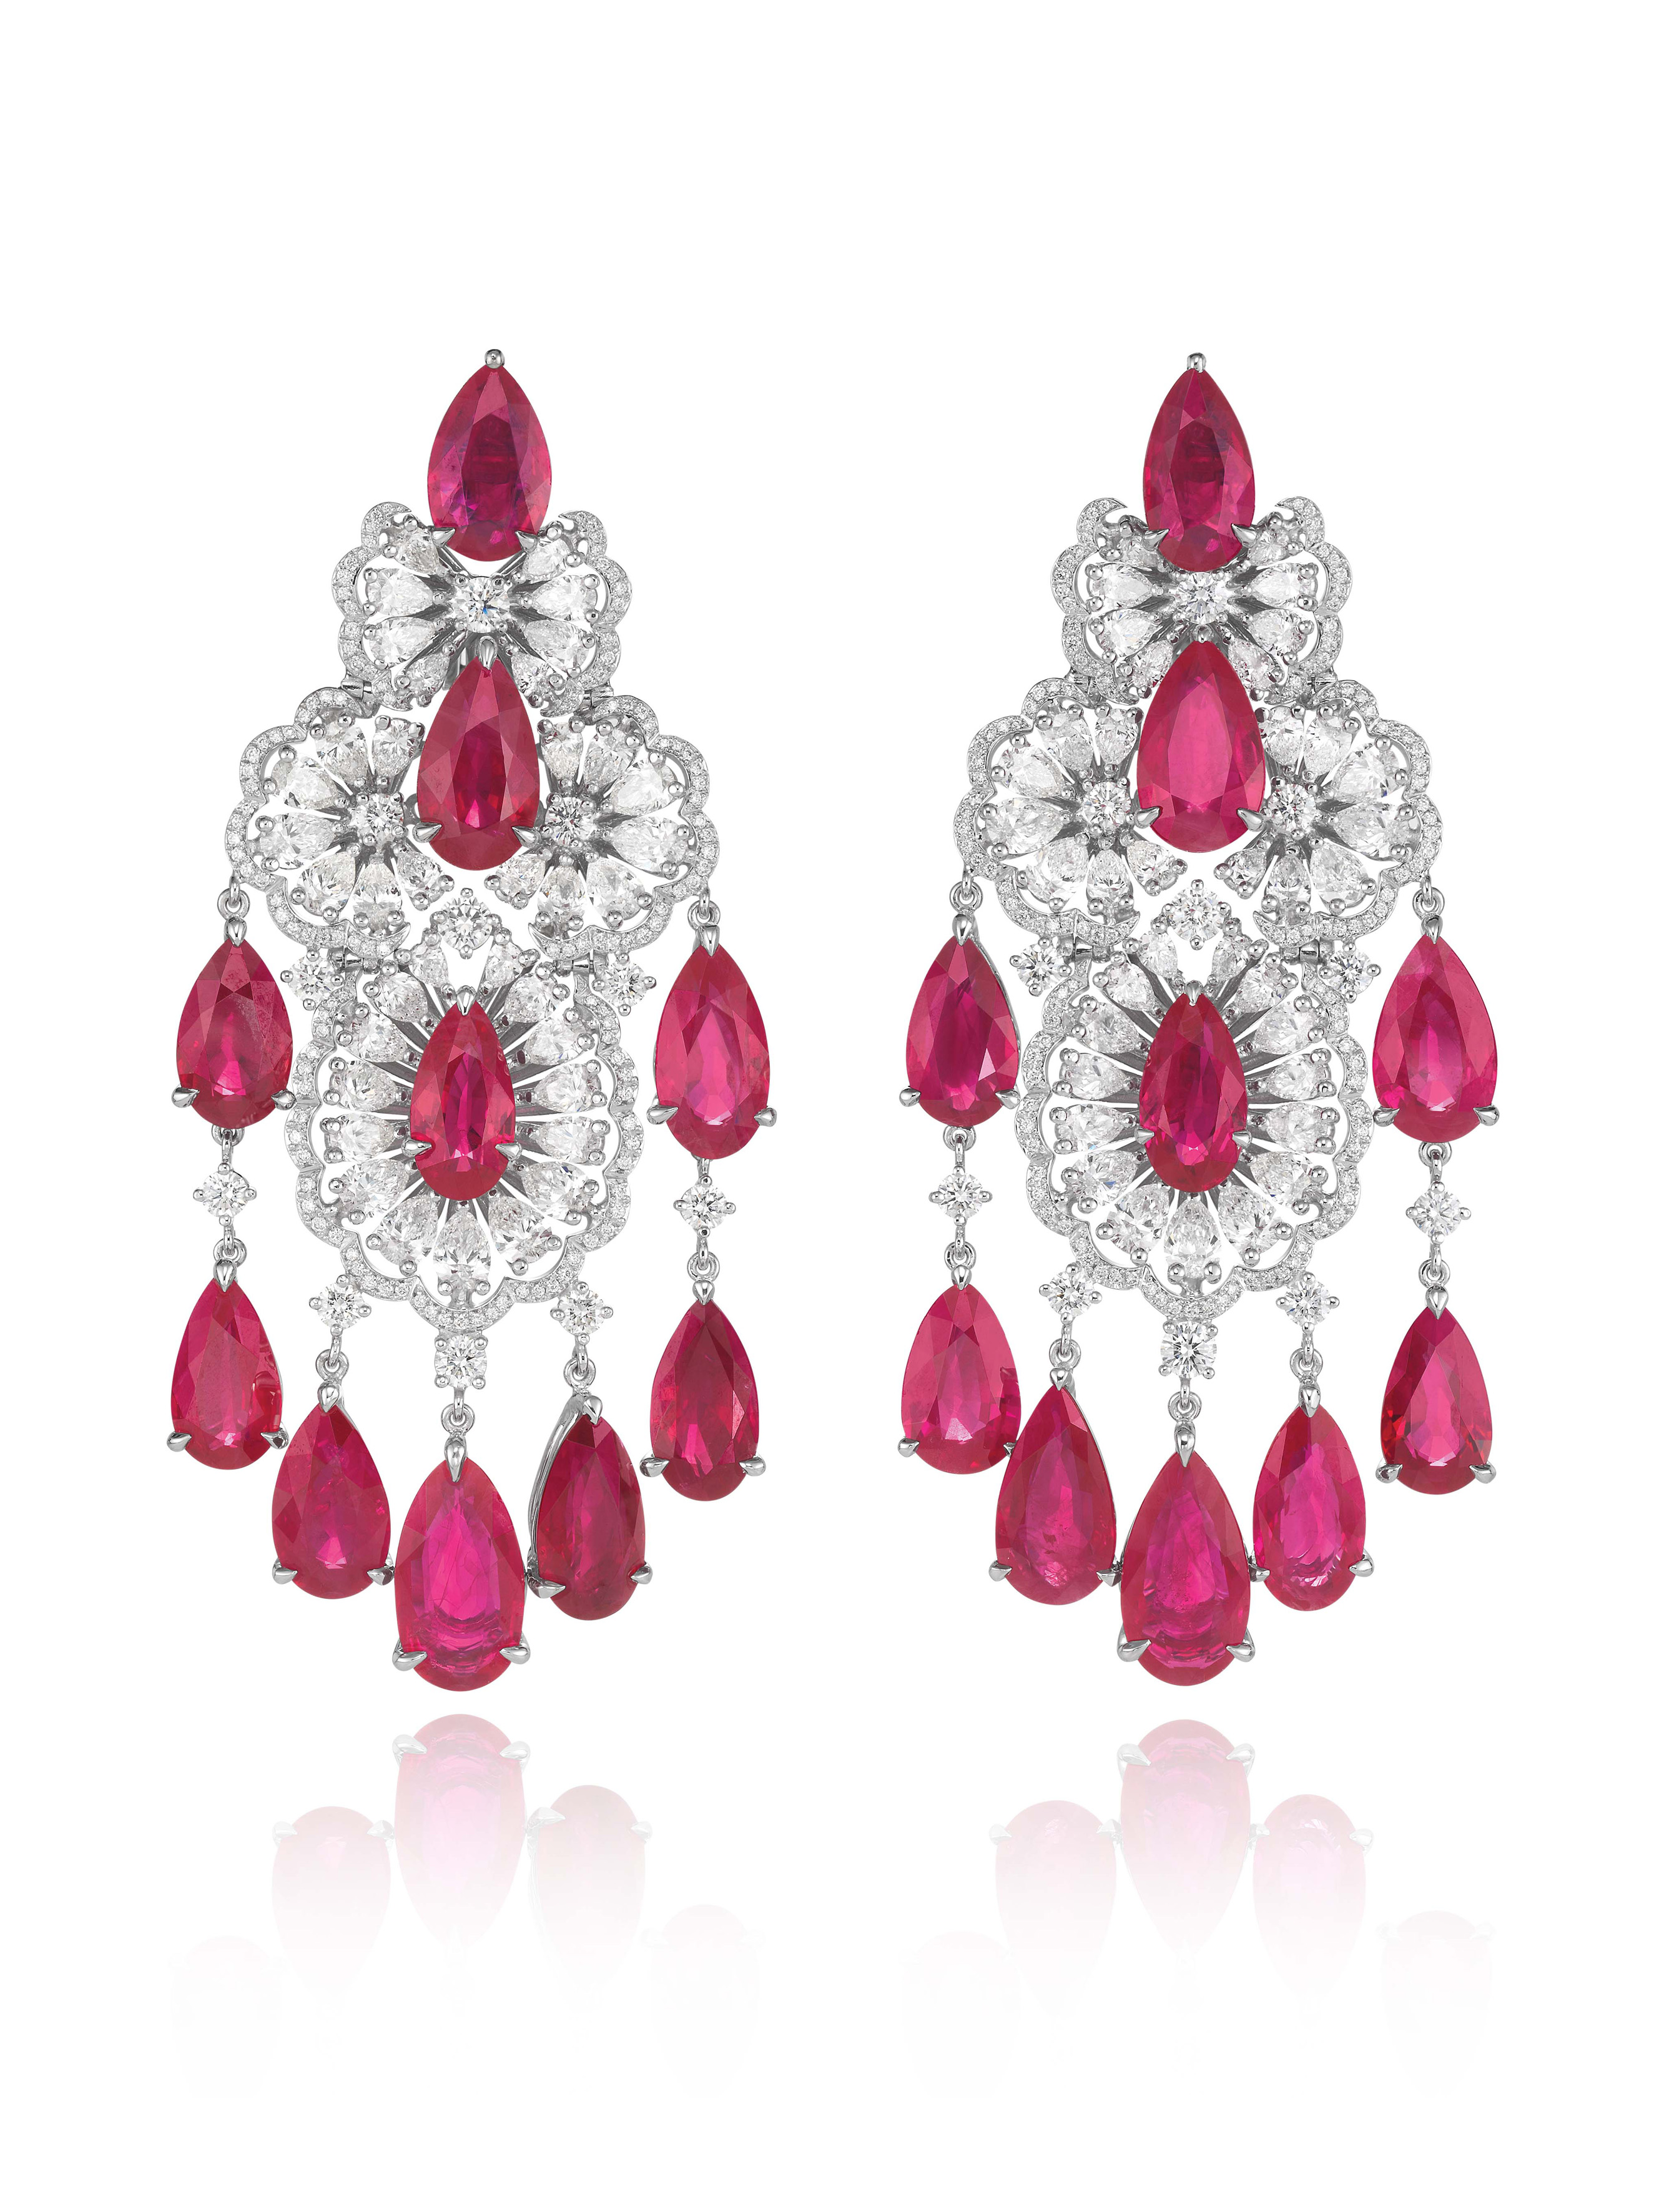 Earrings in 18k white gold set with pear-shaped rubies (46.5cts), pear-shaped (7cts) and brilliant-cut diamonds